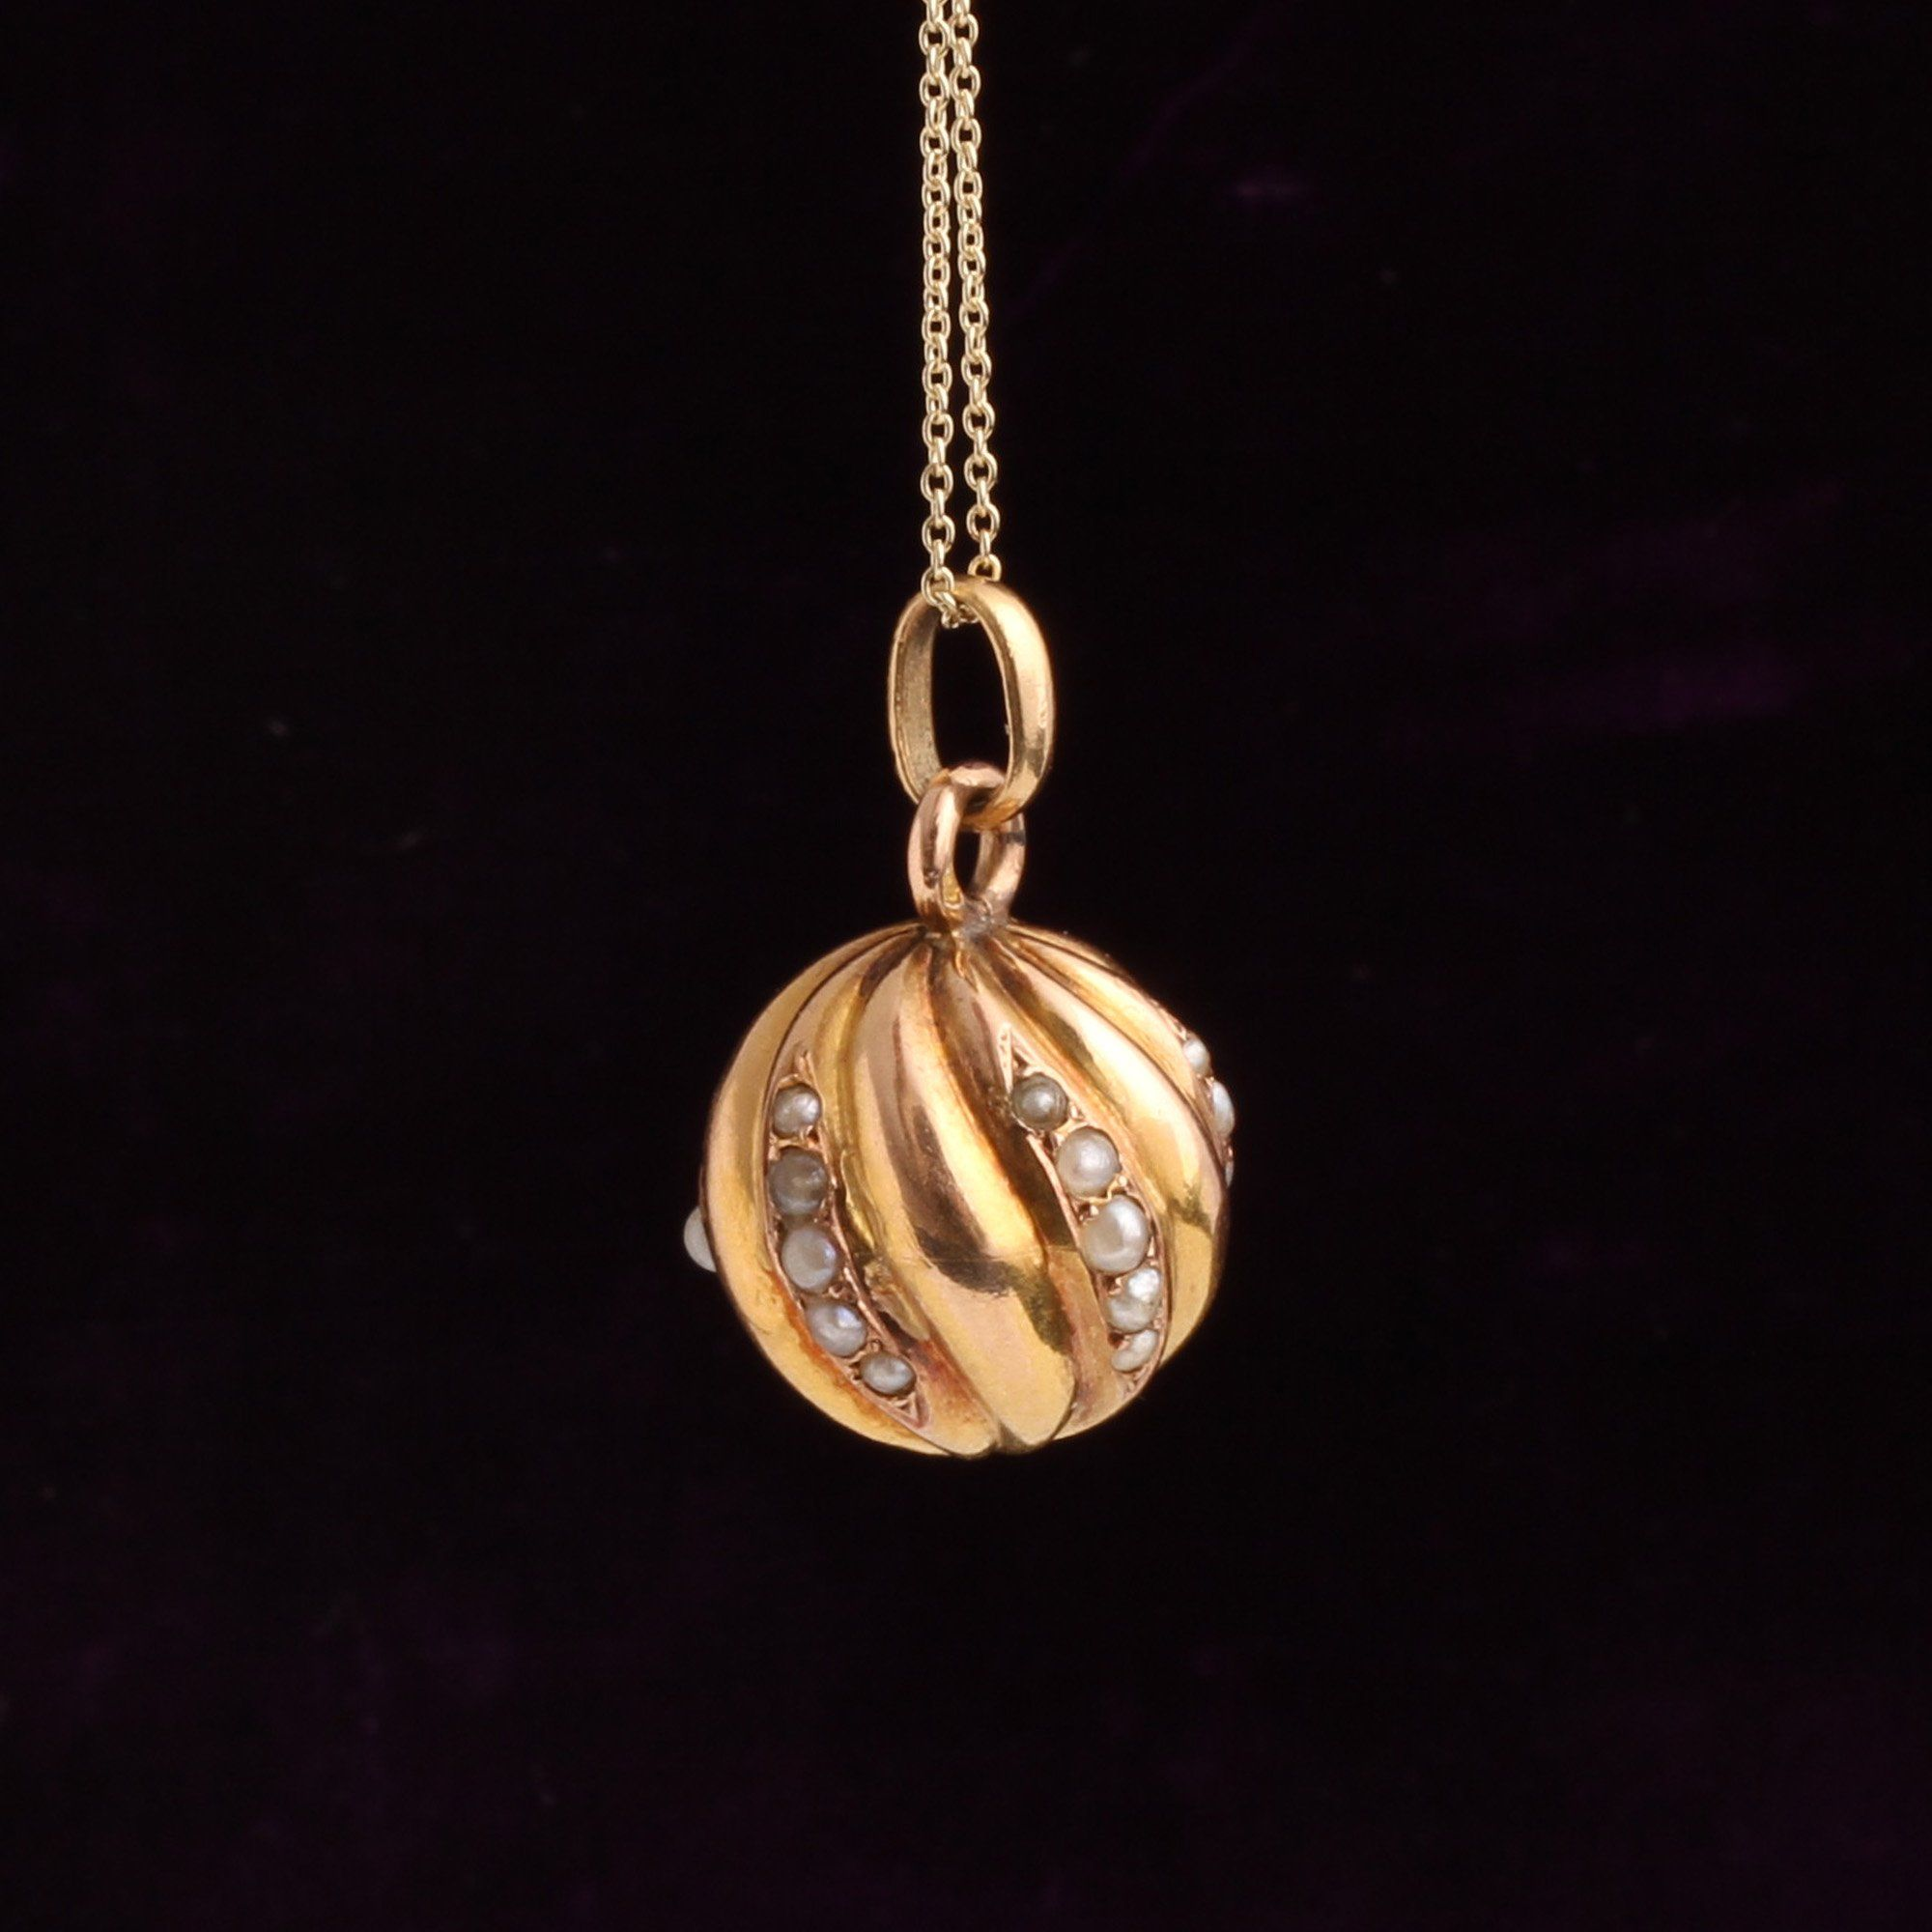 19th Century French Seed Pearl Orb Pendant